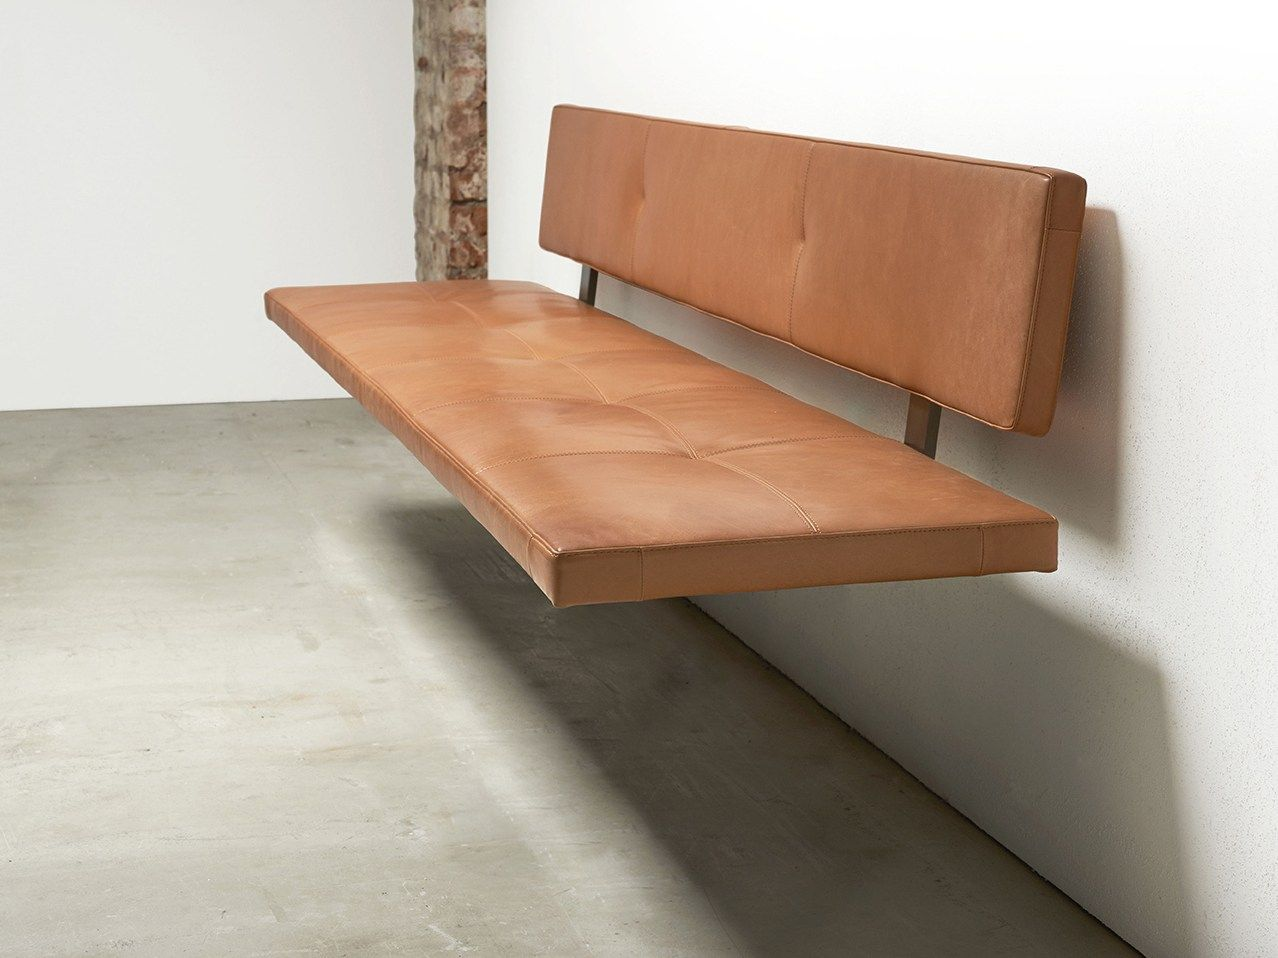 Lax Wall Mounted Bench Seating Lax Collection By More Design Gil Coste In 2020 Dining Bench With Back Leather Bench Wall Bench